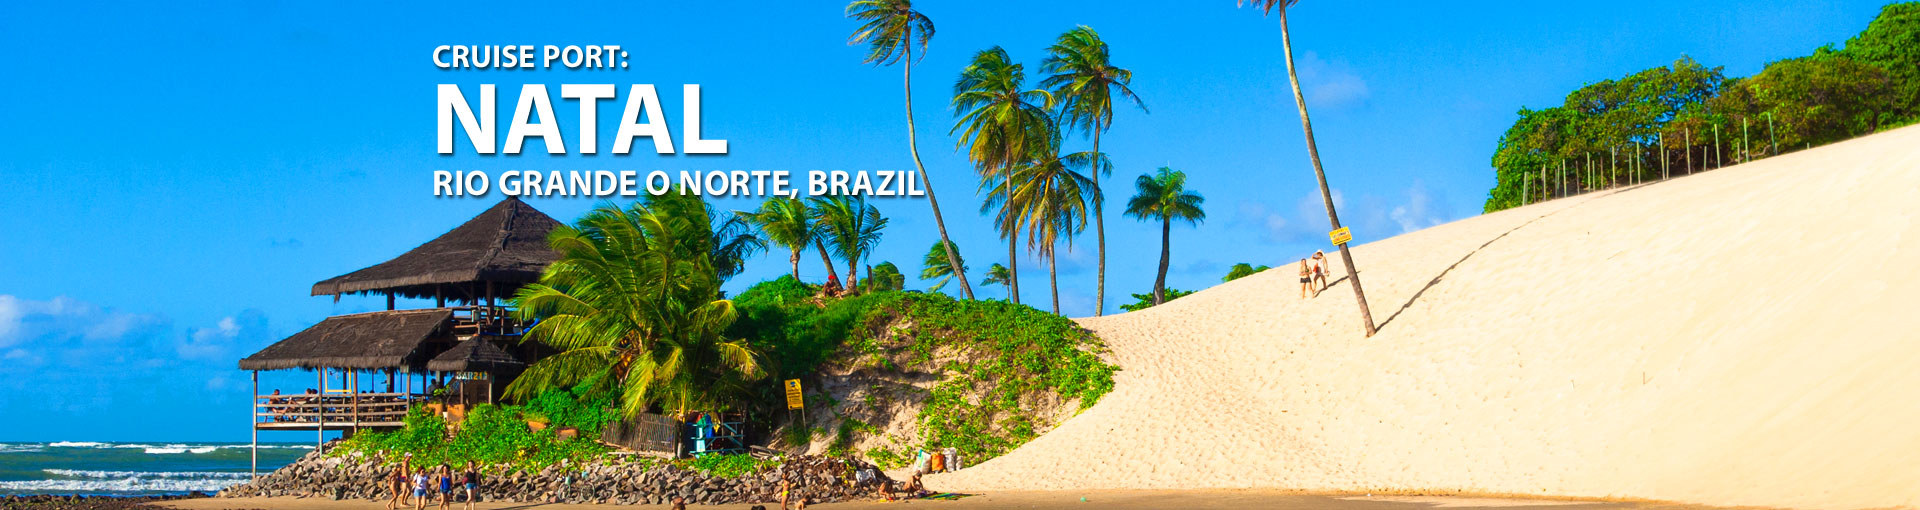 Cruises to Natal(Rio Grande Do Norte), Brazil